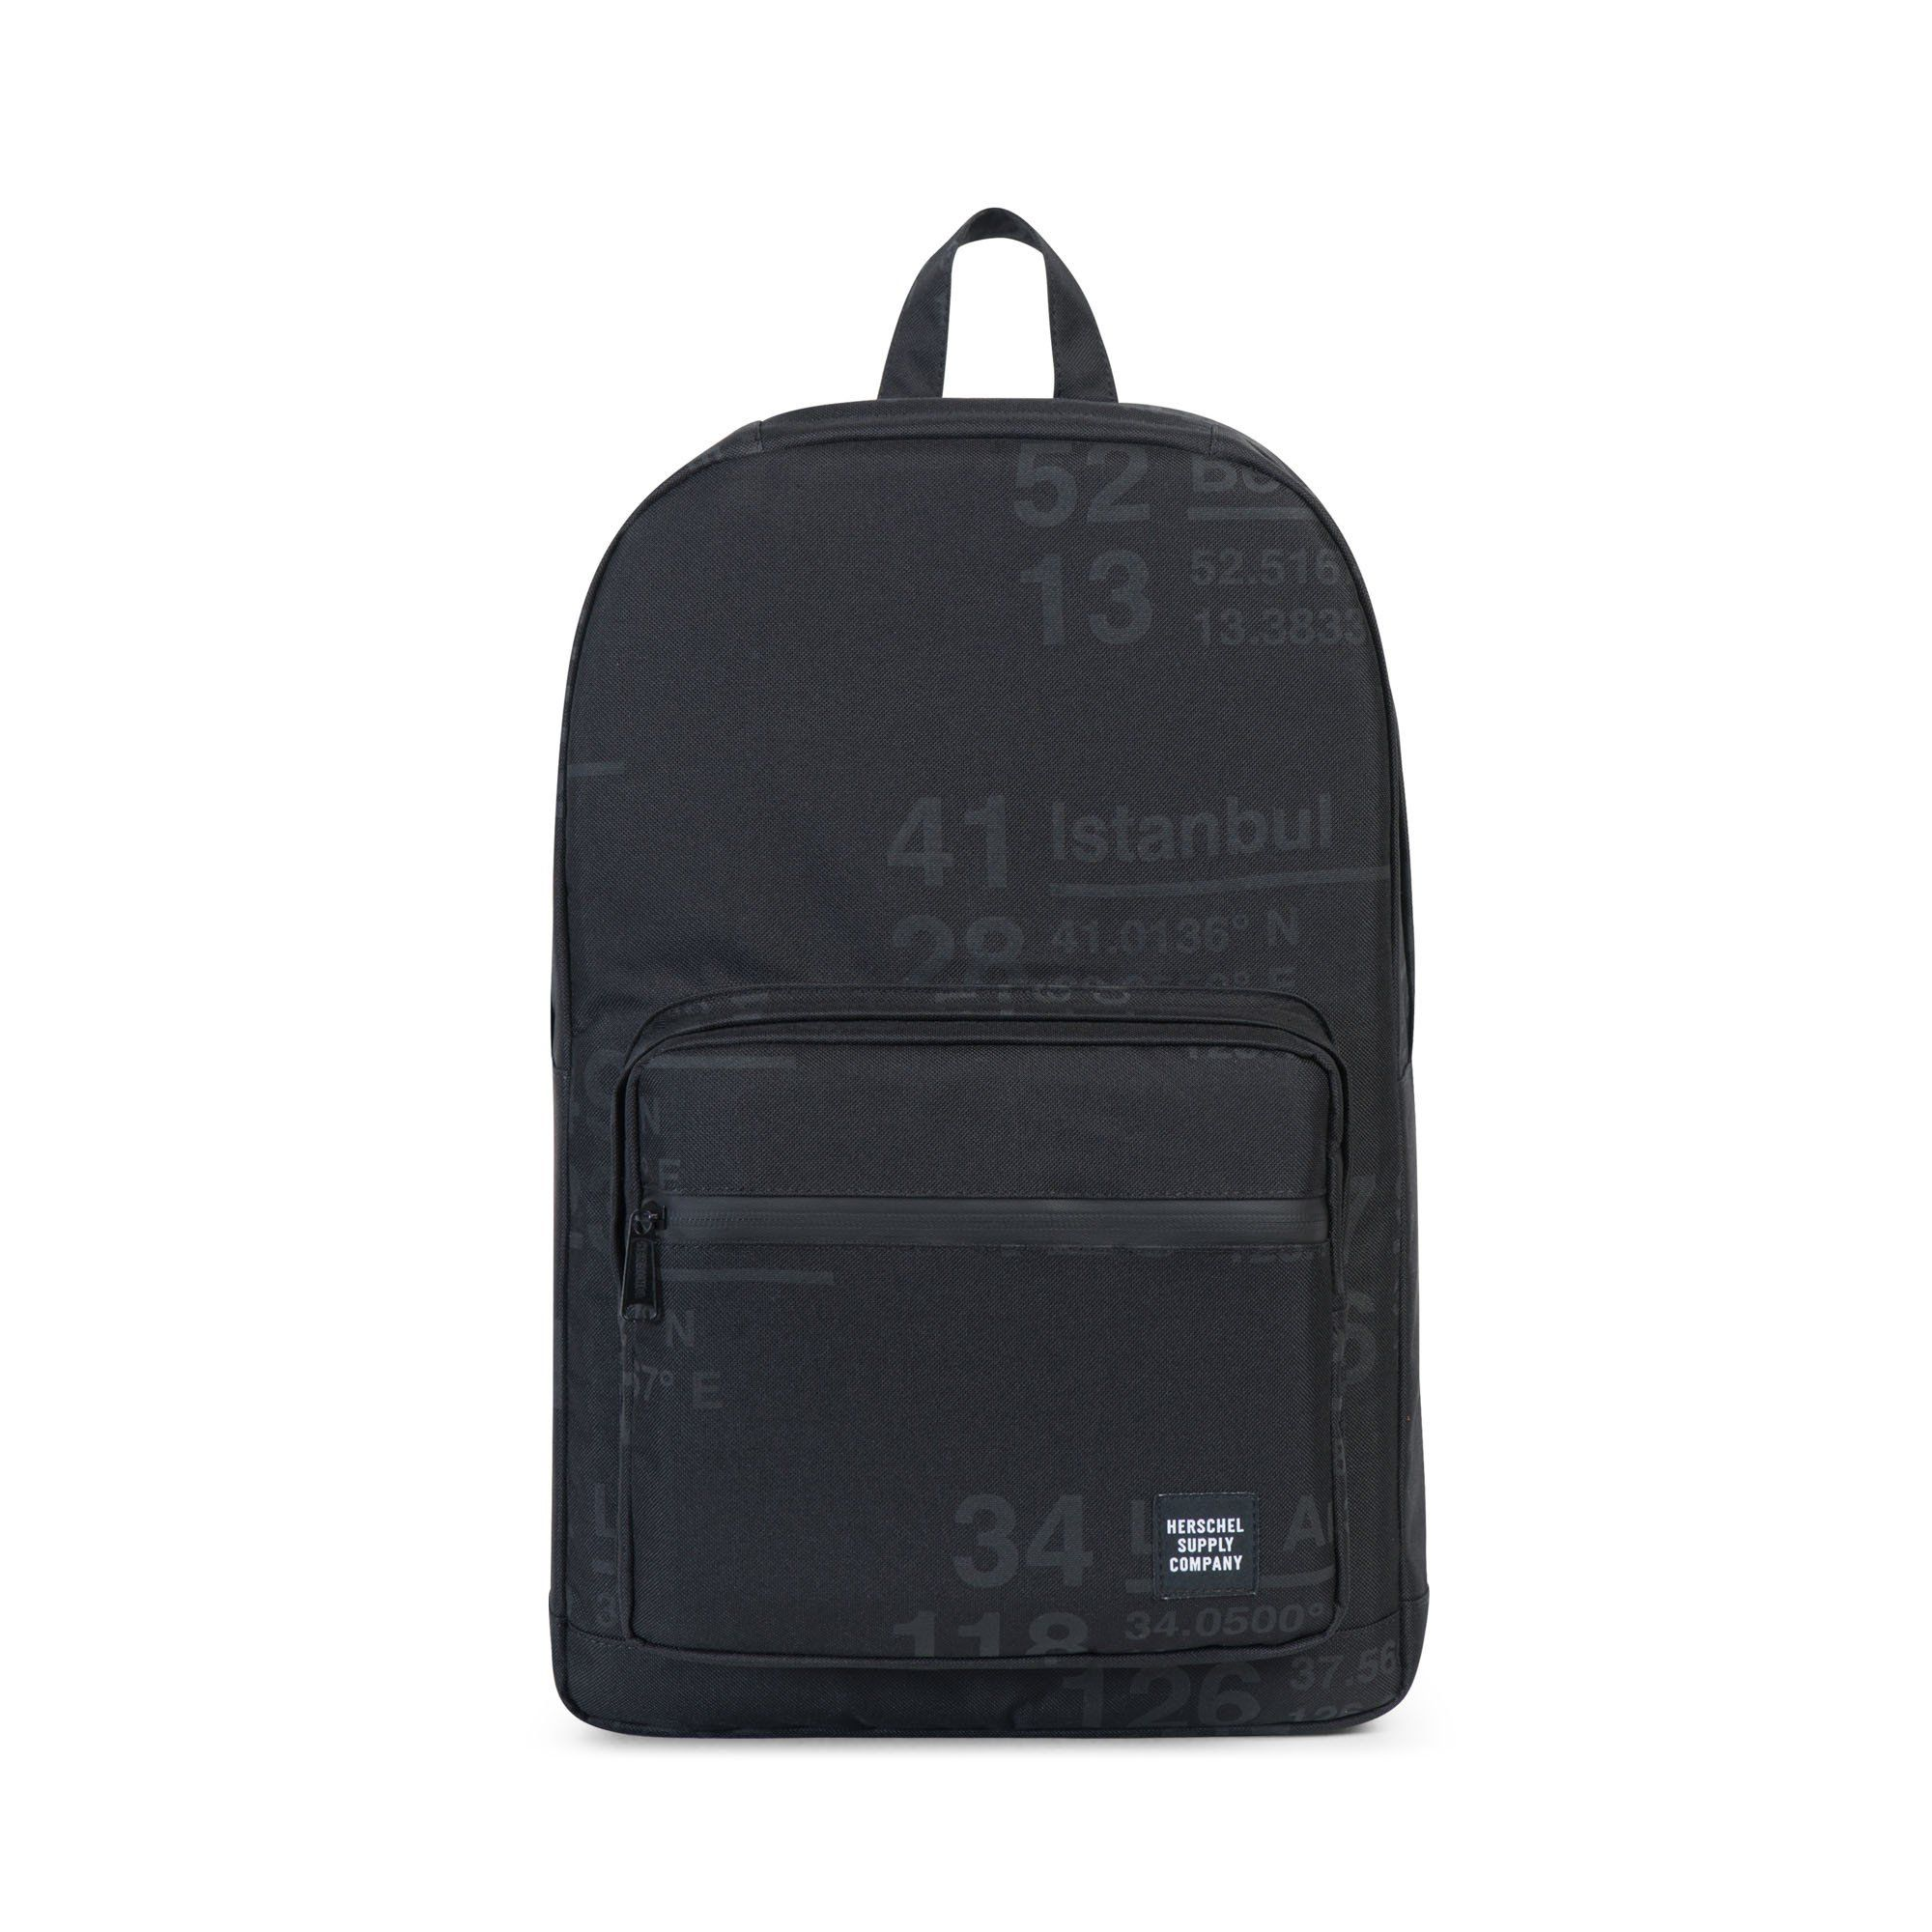 herschel supply co manufactures the finest quality backpacks